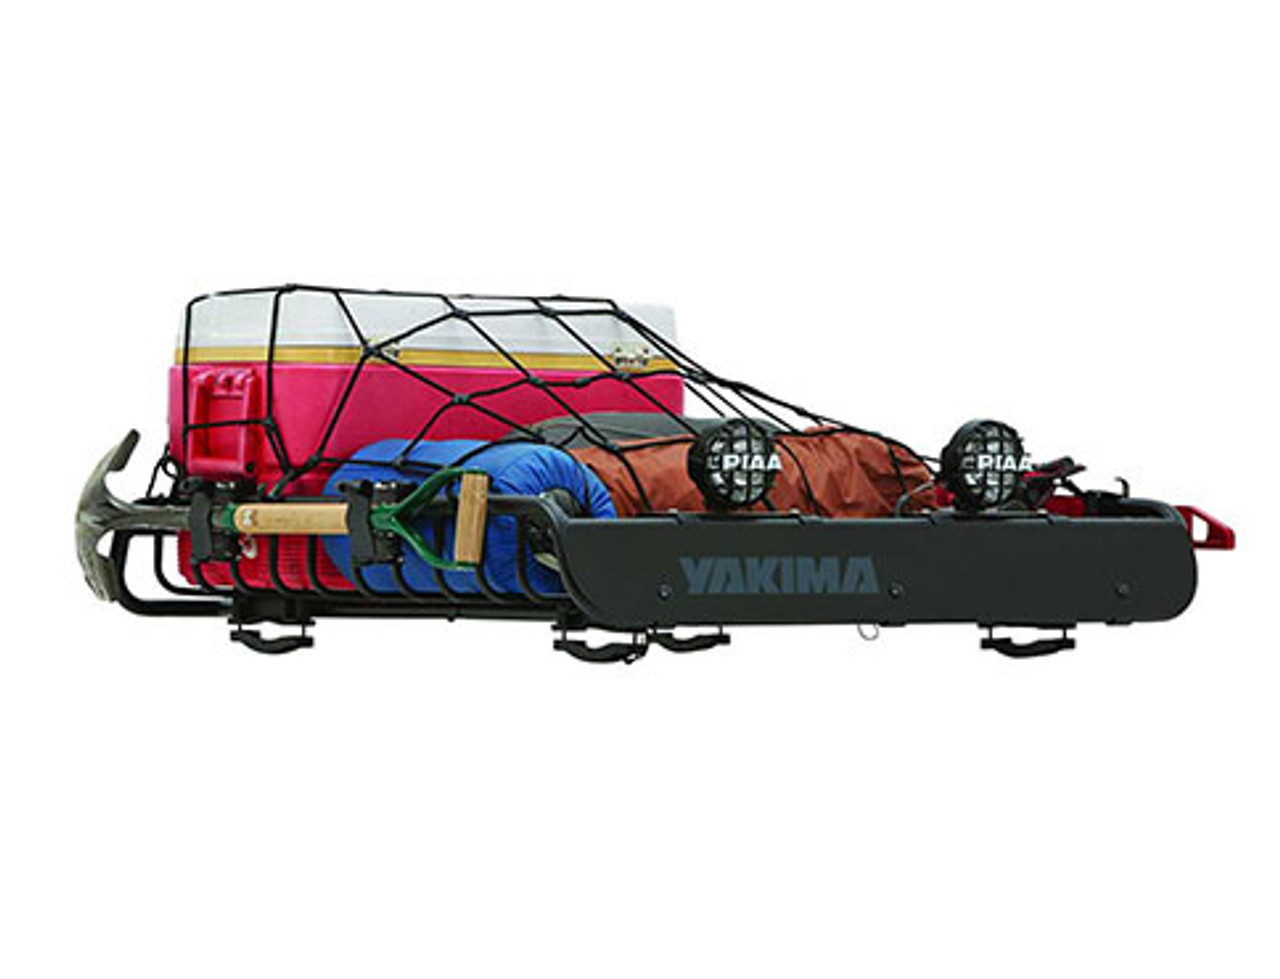 Yakima Loadwarrior Medium cargo basket